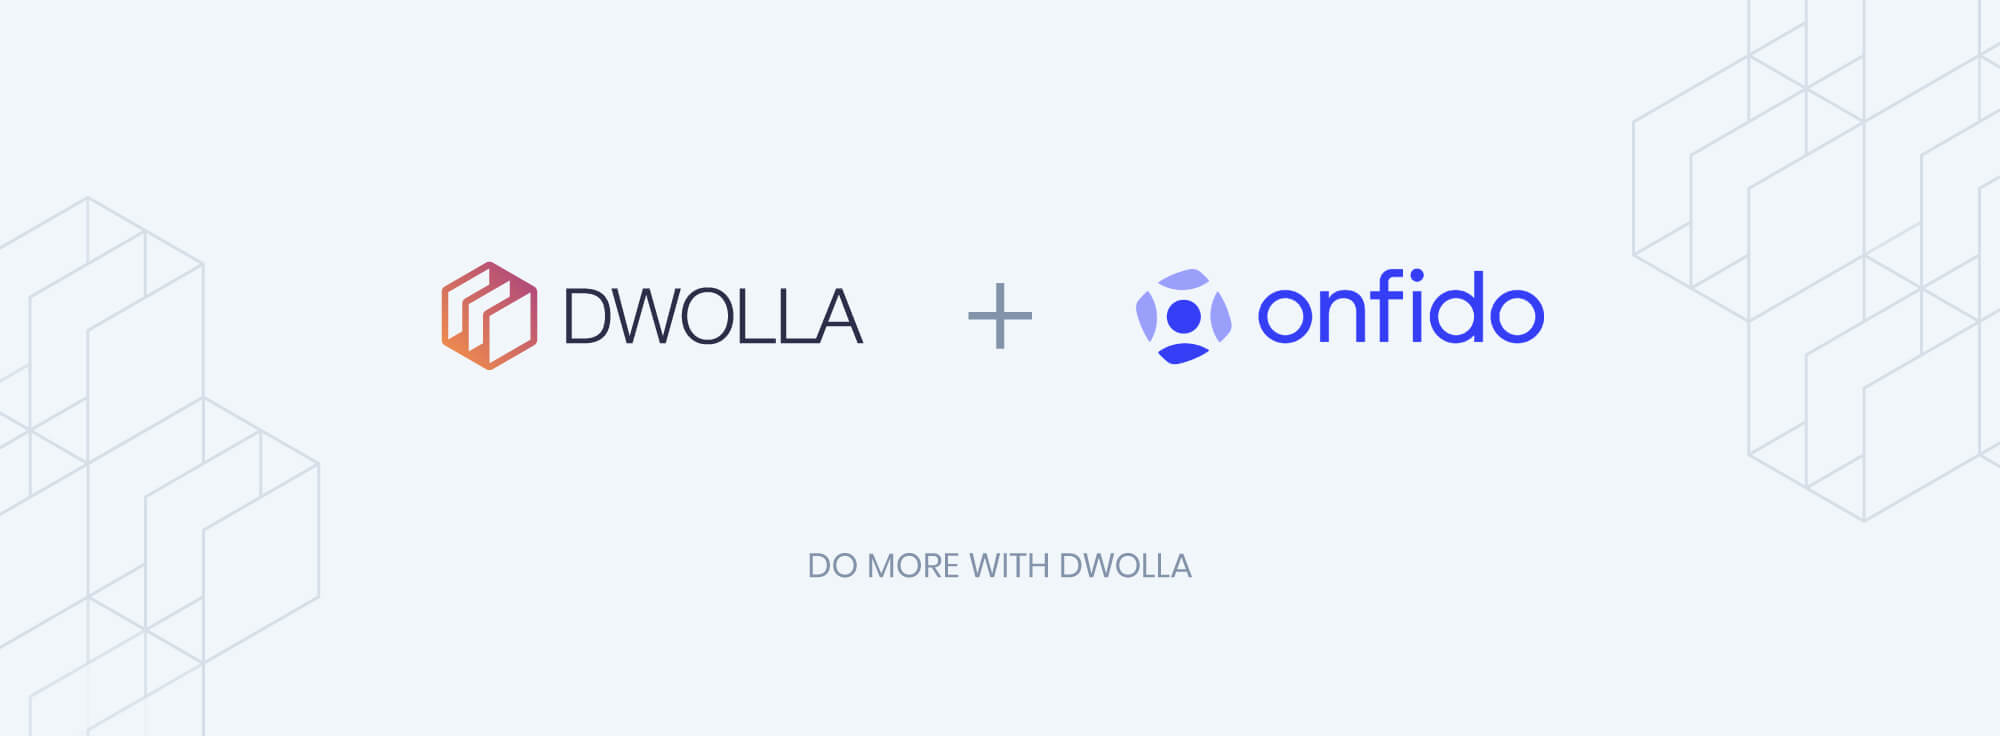 Dwolla and Onfido partnership